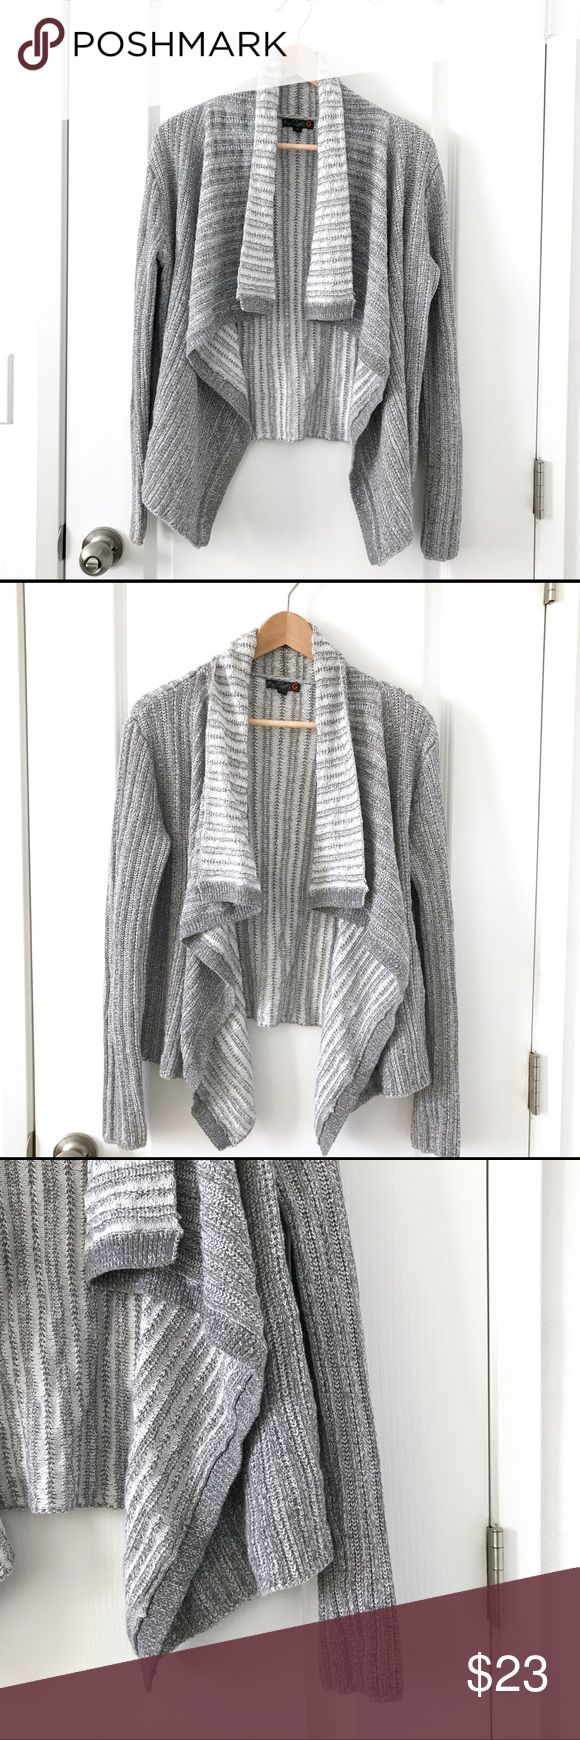 🔥Just Reduced🔥 GUESS Waterfall Drape Collar Sz M G by Guess open cardigan w/ waterfall drape collar.  Easy to wear, and goes with everything.  Pairs perfectly with leggings/jeans, and boots. 100% cotton. In great pre-owned condition. Size Medium.  — Offers are always welcome. 😊 — Bundle 2 or more items from my closet and I will send you a private discount, + discounted shipping. 😍 G by Guess Sweaters Cardigans